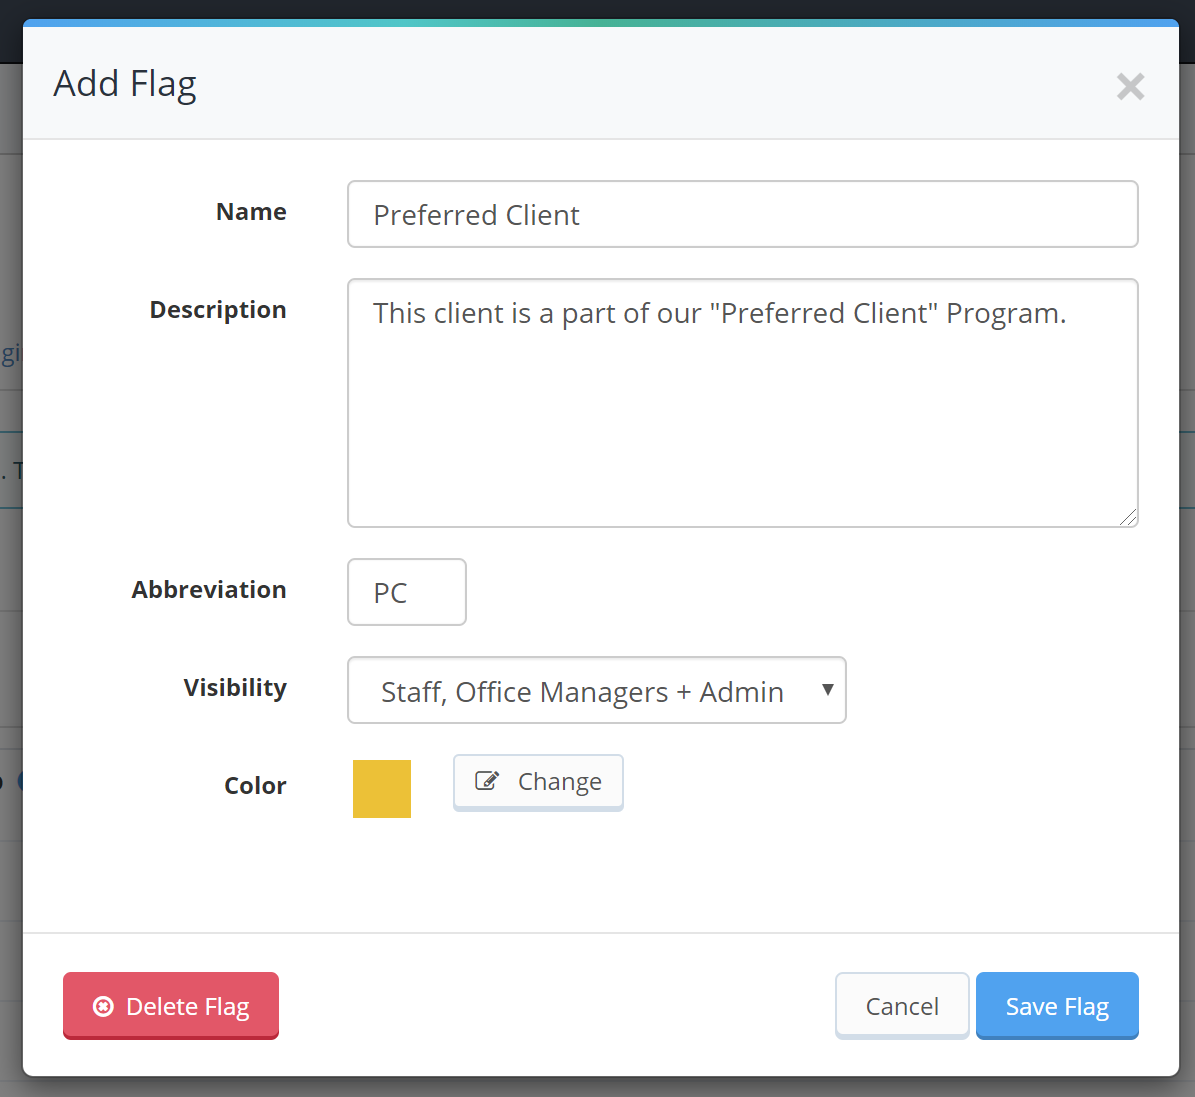 Add Flag name, description, abbreviation visibility setting and color